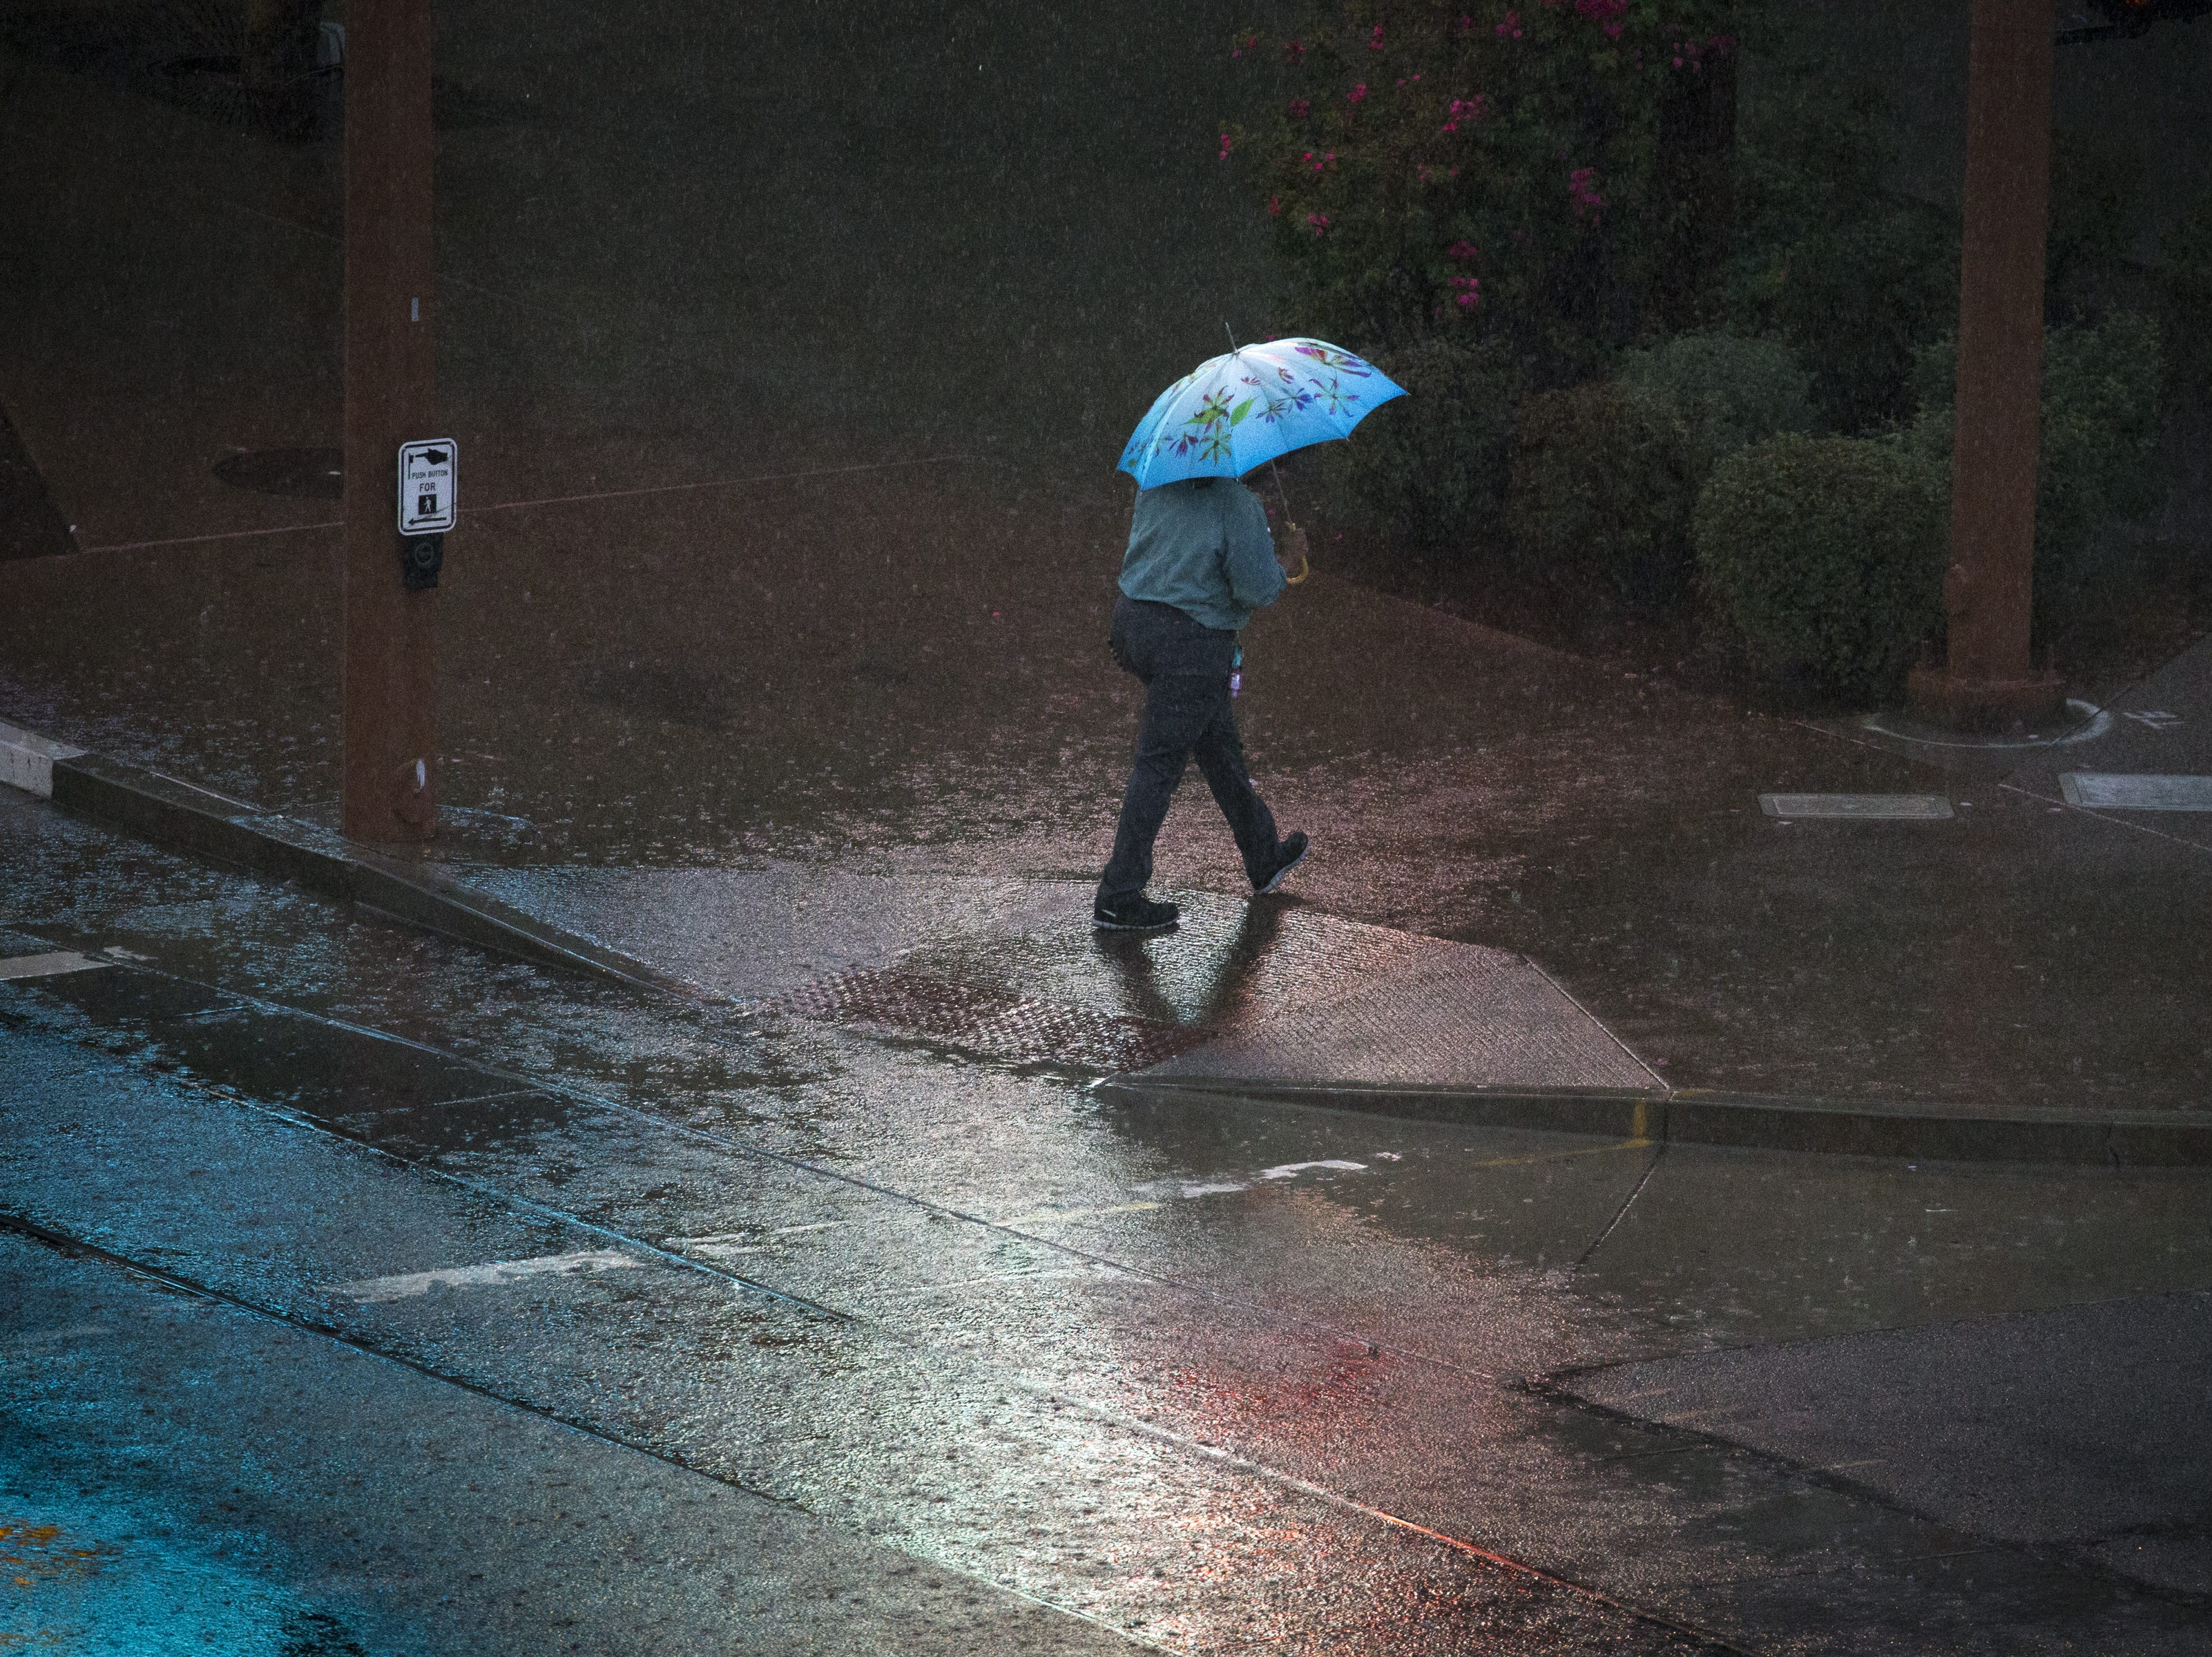 A pedestrian walks in the rain after crossing Washington Street, Oct. 2, 2018, in Phoenix.